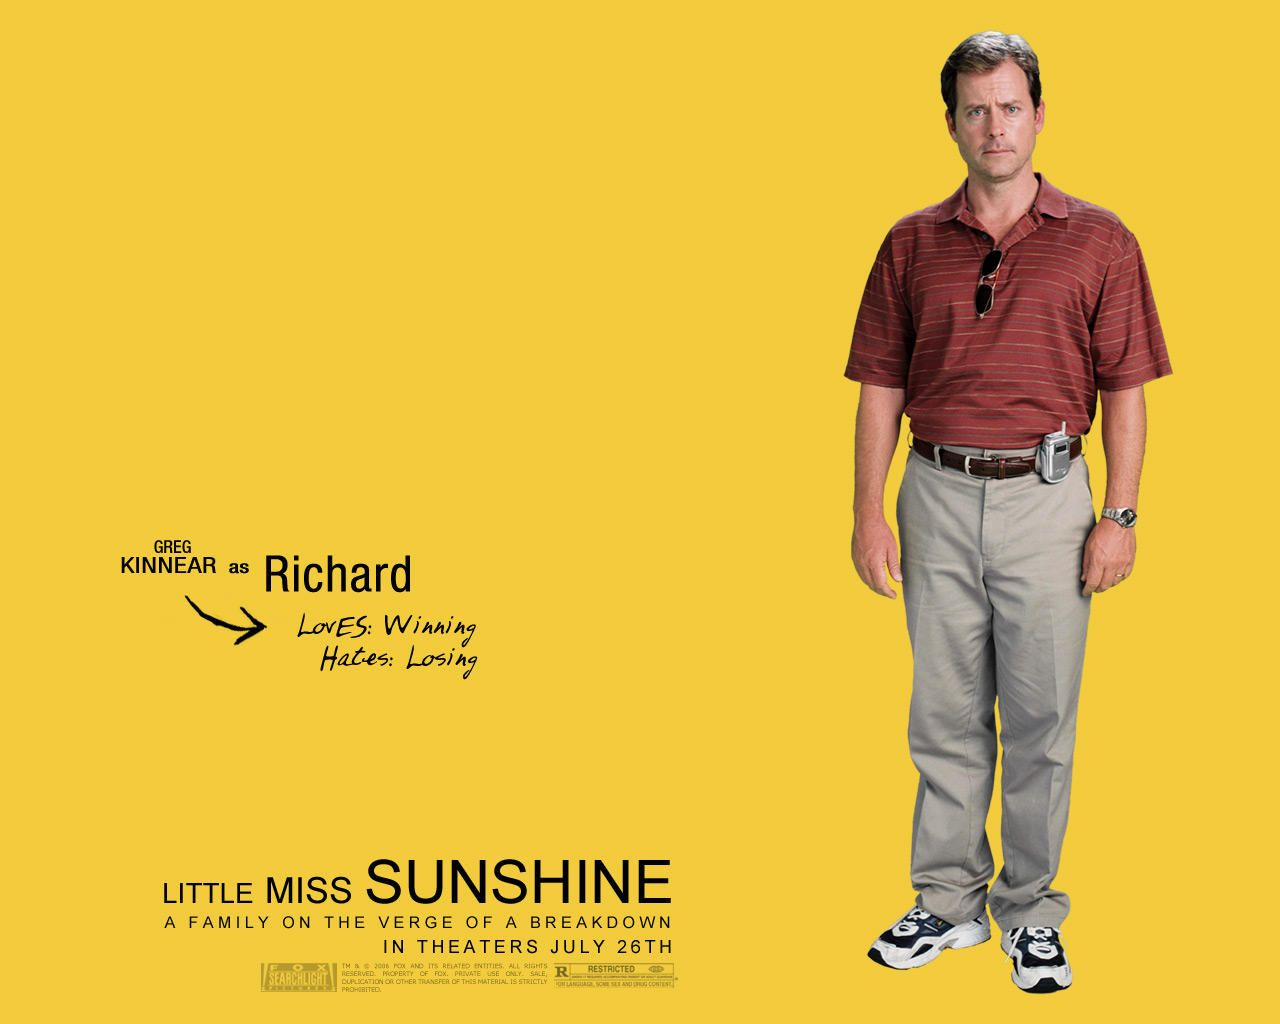 lil miss sunshine Father richard (greg kinnear) is desperately trying to sell his motivational success program with no success meanwhile, pro-honesty mom sheryl (toni collette) lends support to her eccentric family, including her depressed brother (steve carell), fresh out of the hospital after being jilted by his lover.